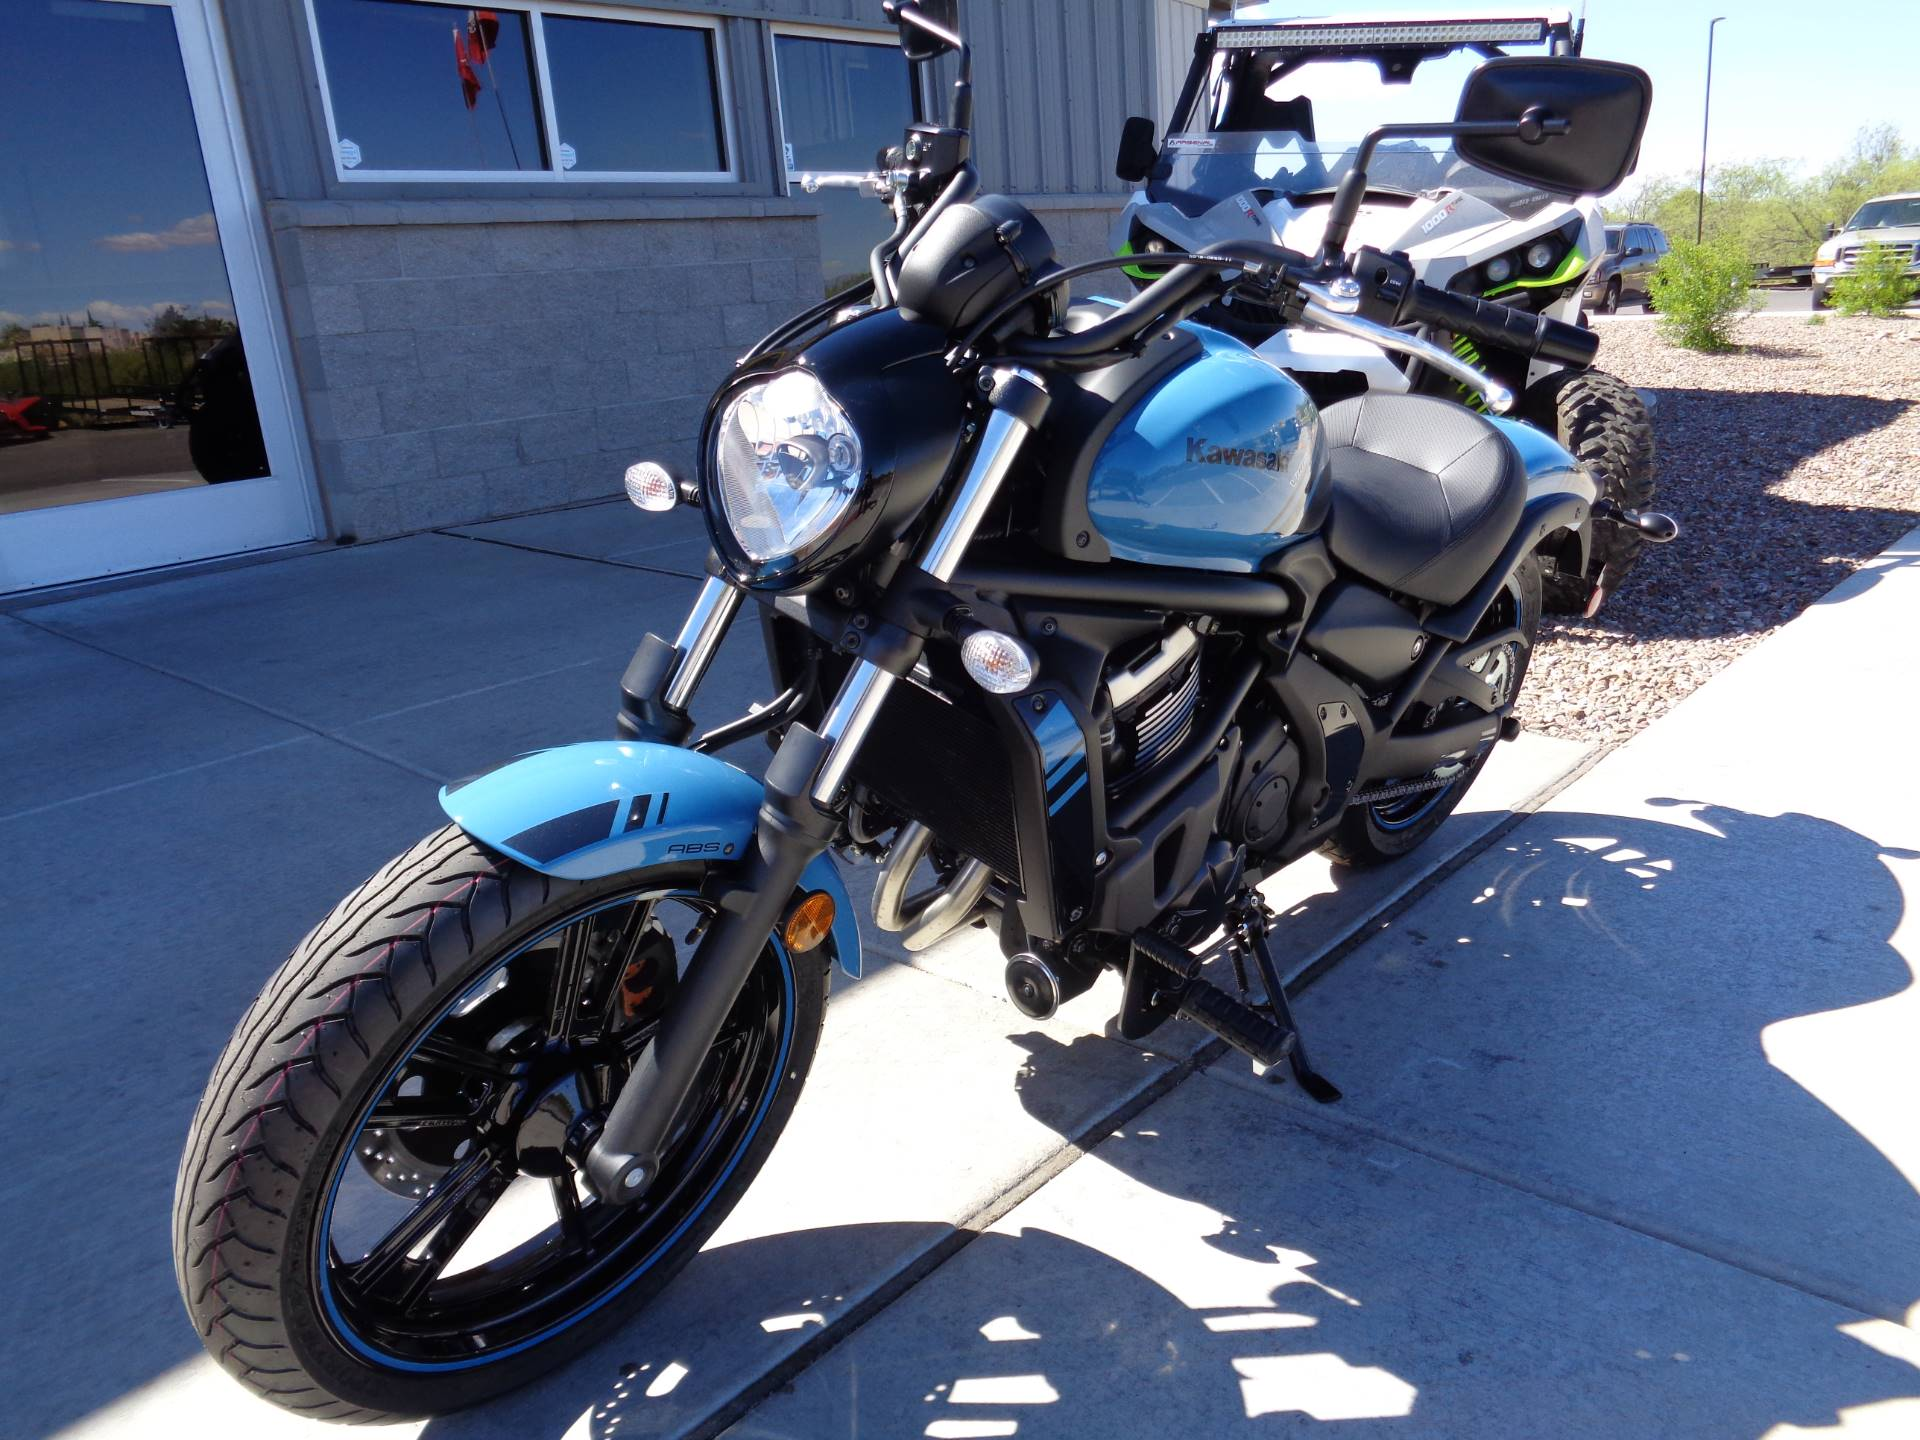 2019 Kawasaki Vulcan S ABS in Sierra Vista, Arizona - Photo 2